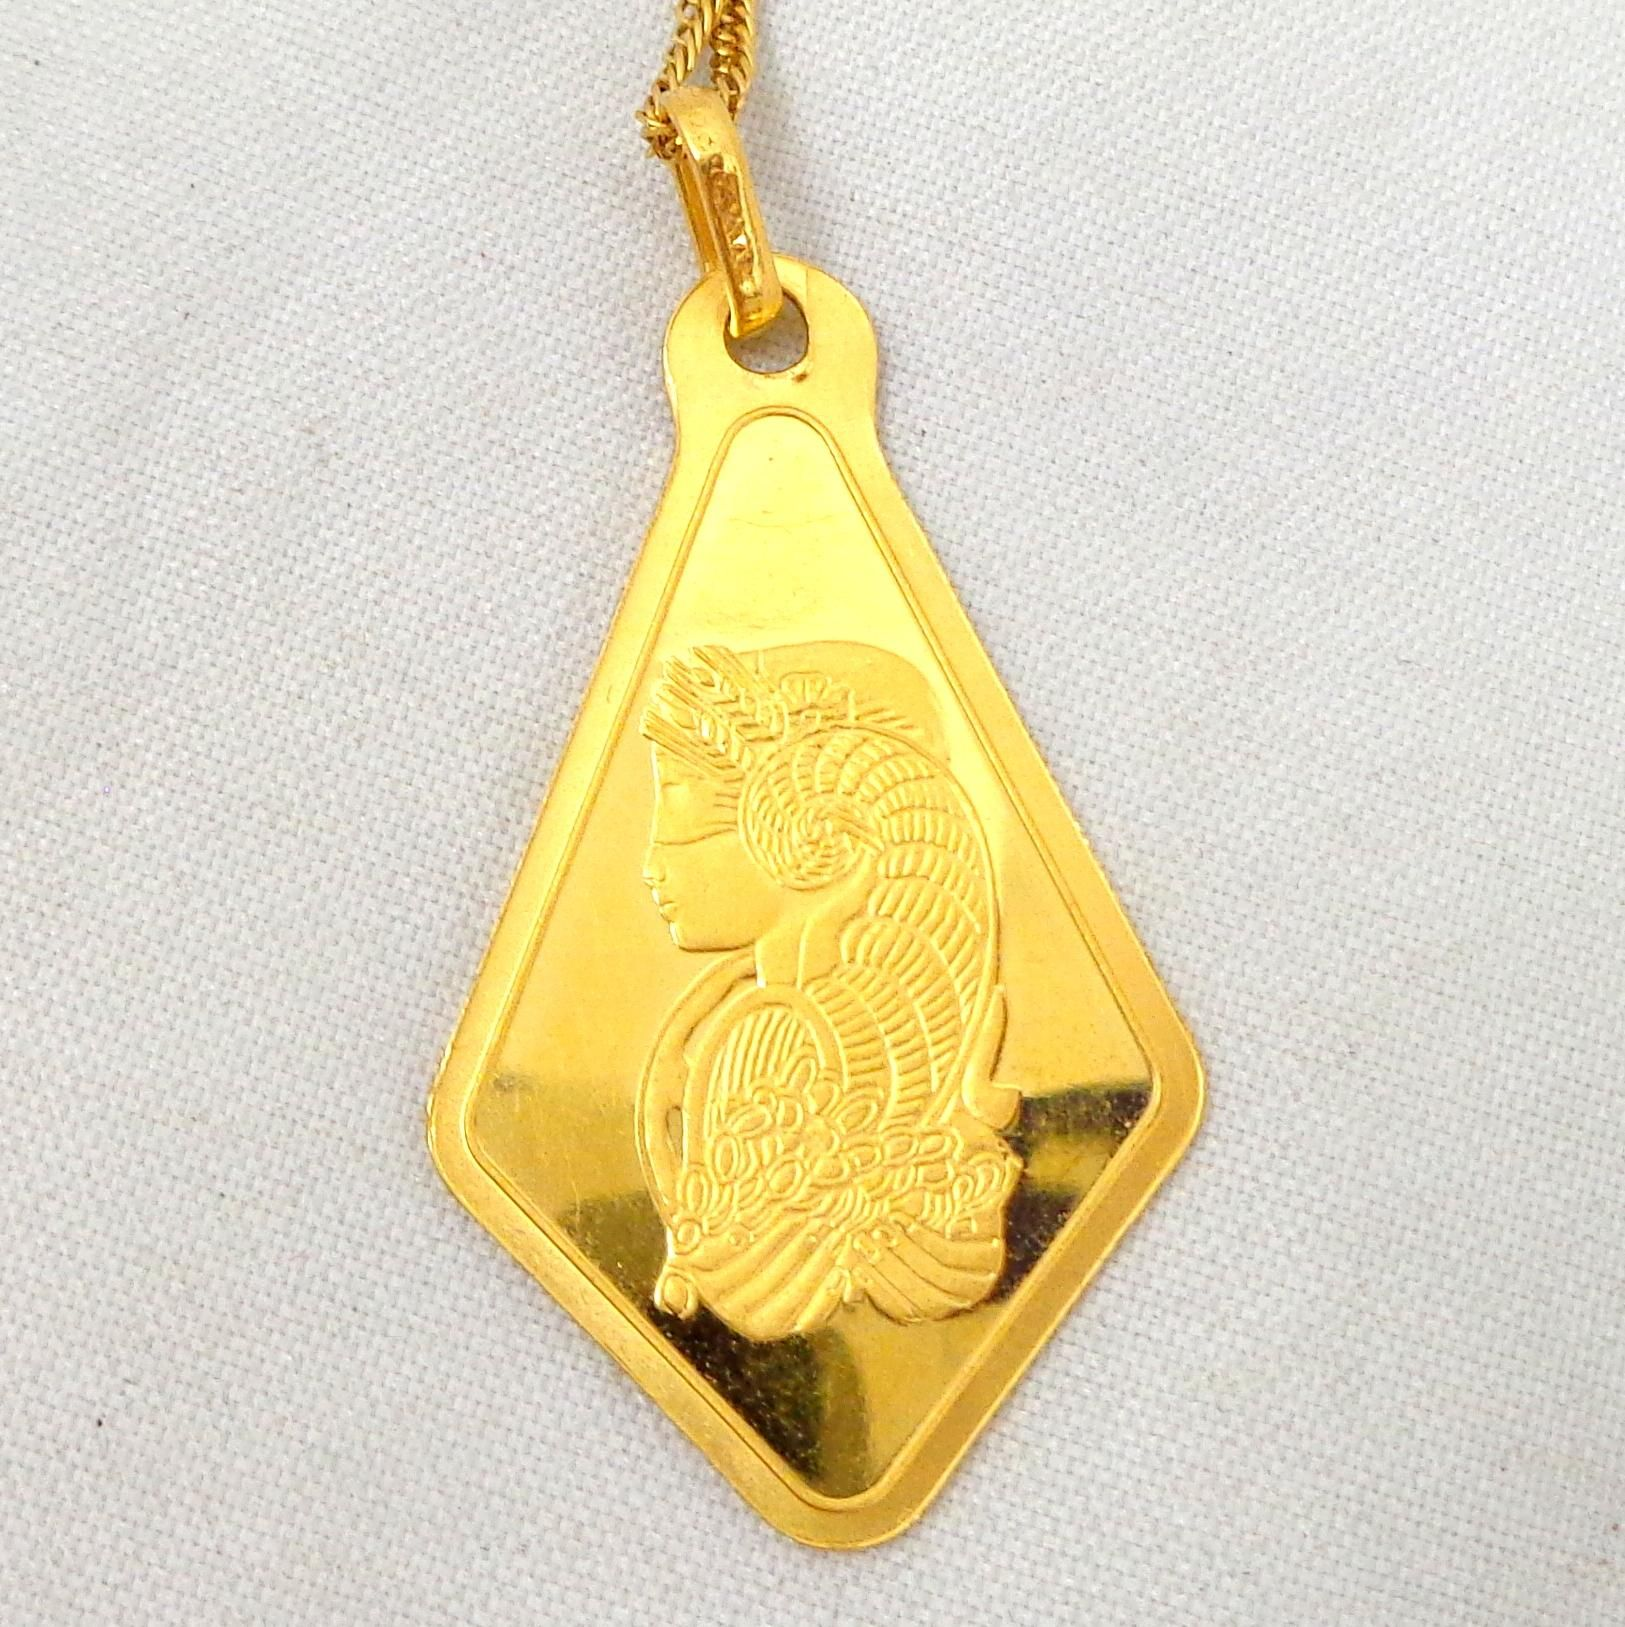 Estate 9999 Gold Pamp Suisse 25g Lady Fortuna Pendant W 24k Tiger Eye Sterling Silver Wire Wrapped By Withlovefromkelly Necklace